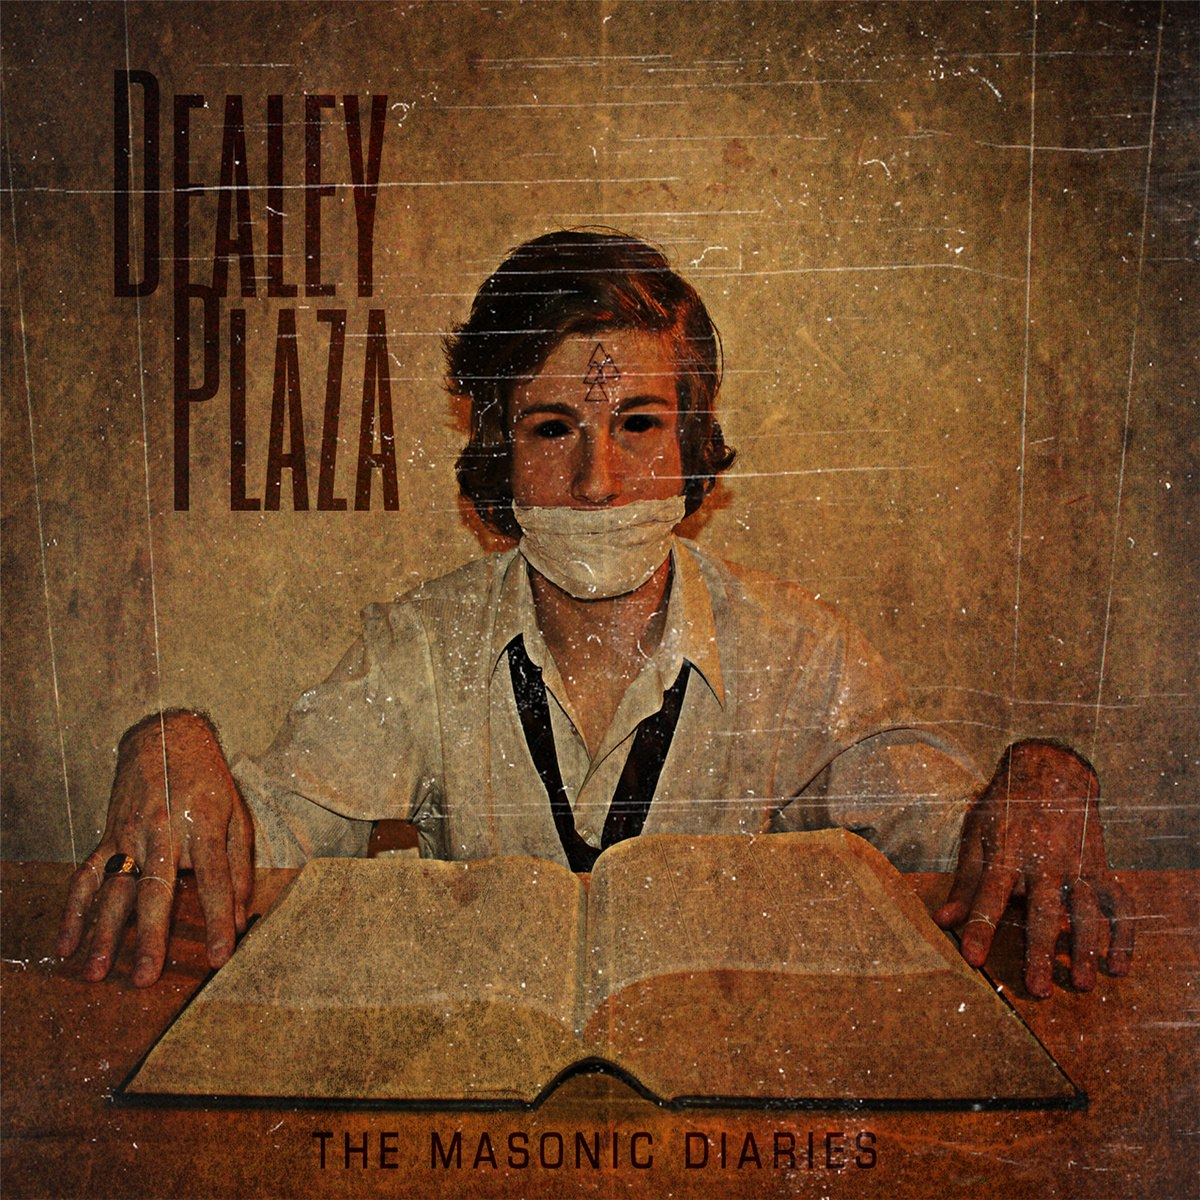 Dealey Plaza - The Masonic Diaries (2013)